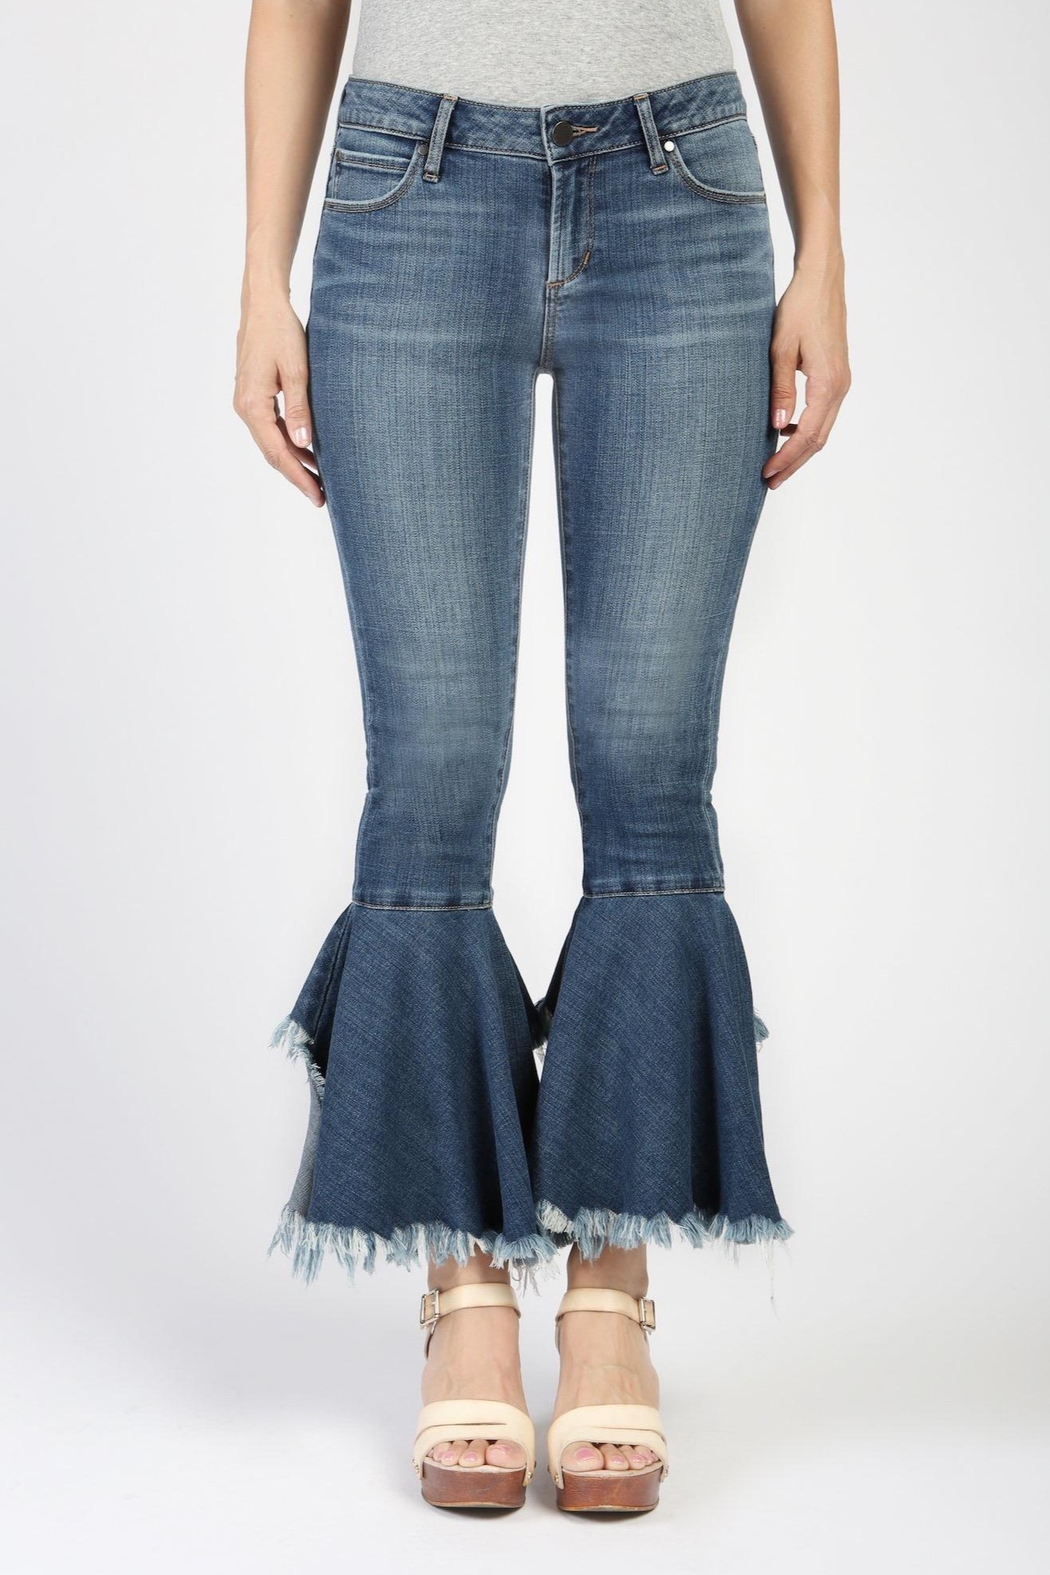 Articles of Society Distressed Crop Flare Jeans - Main Image